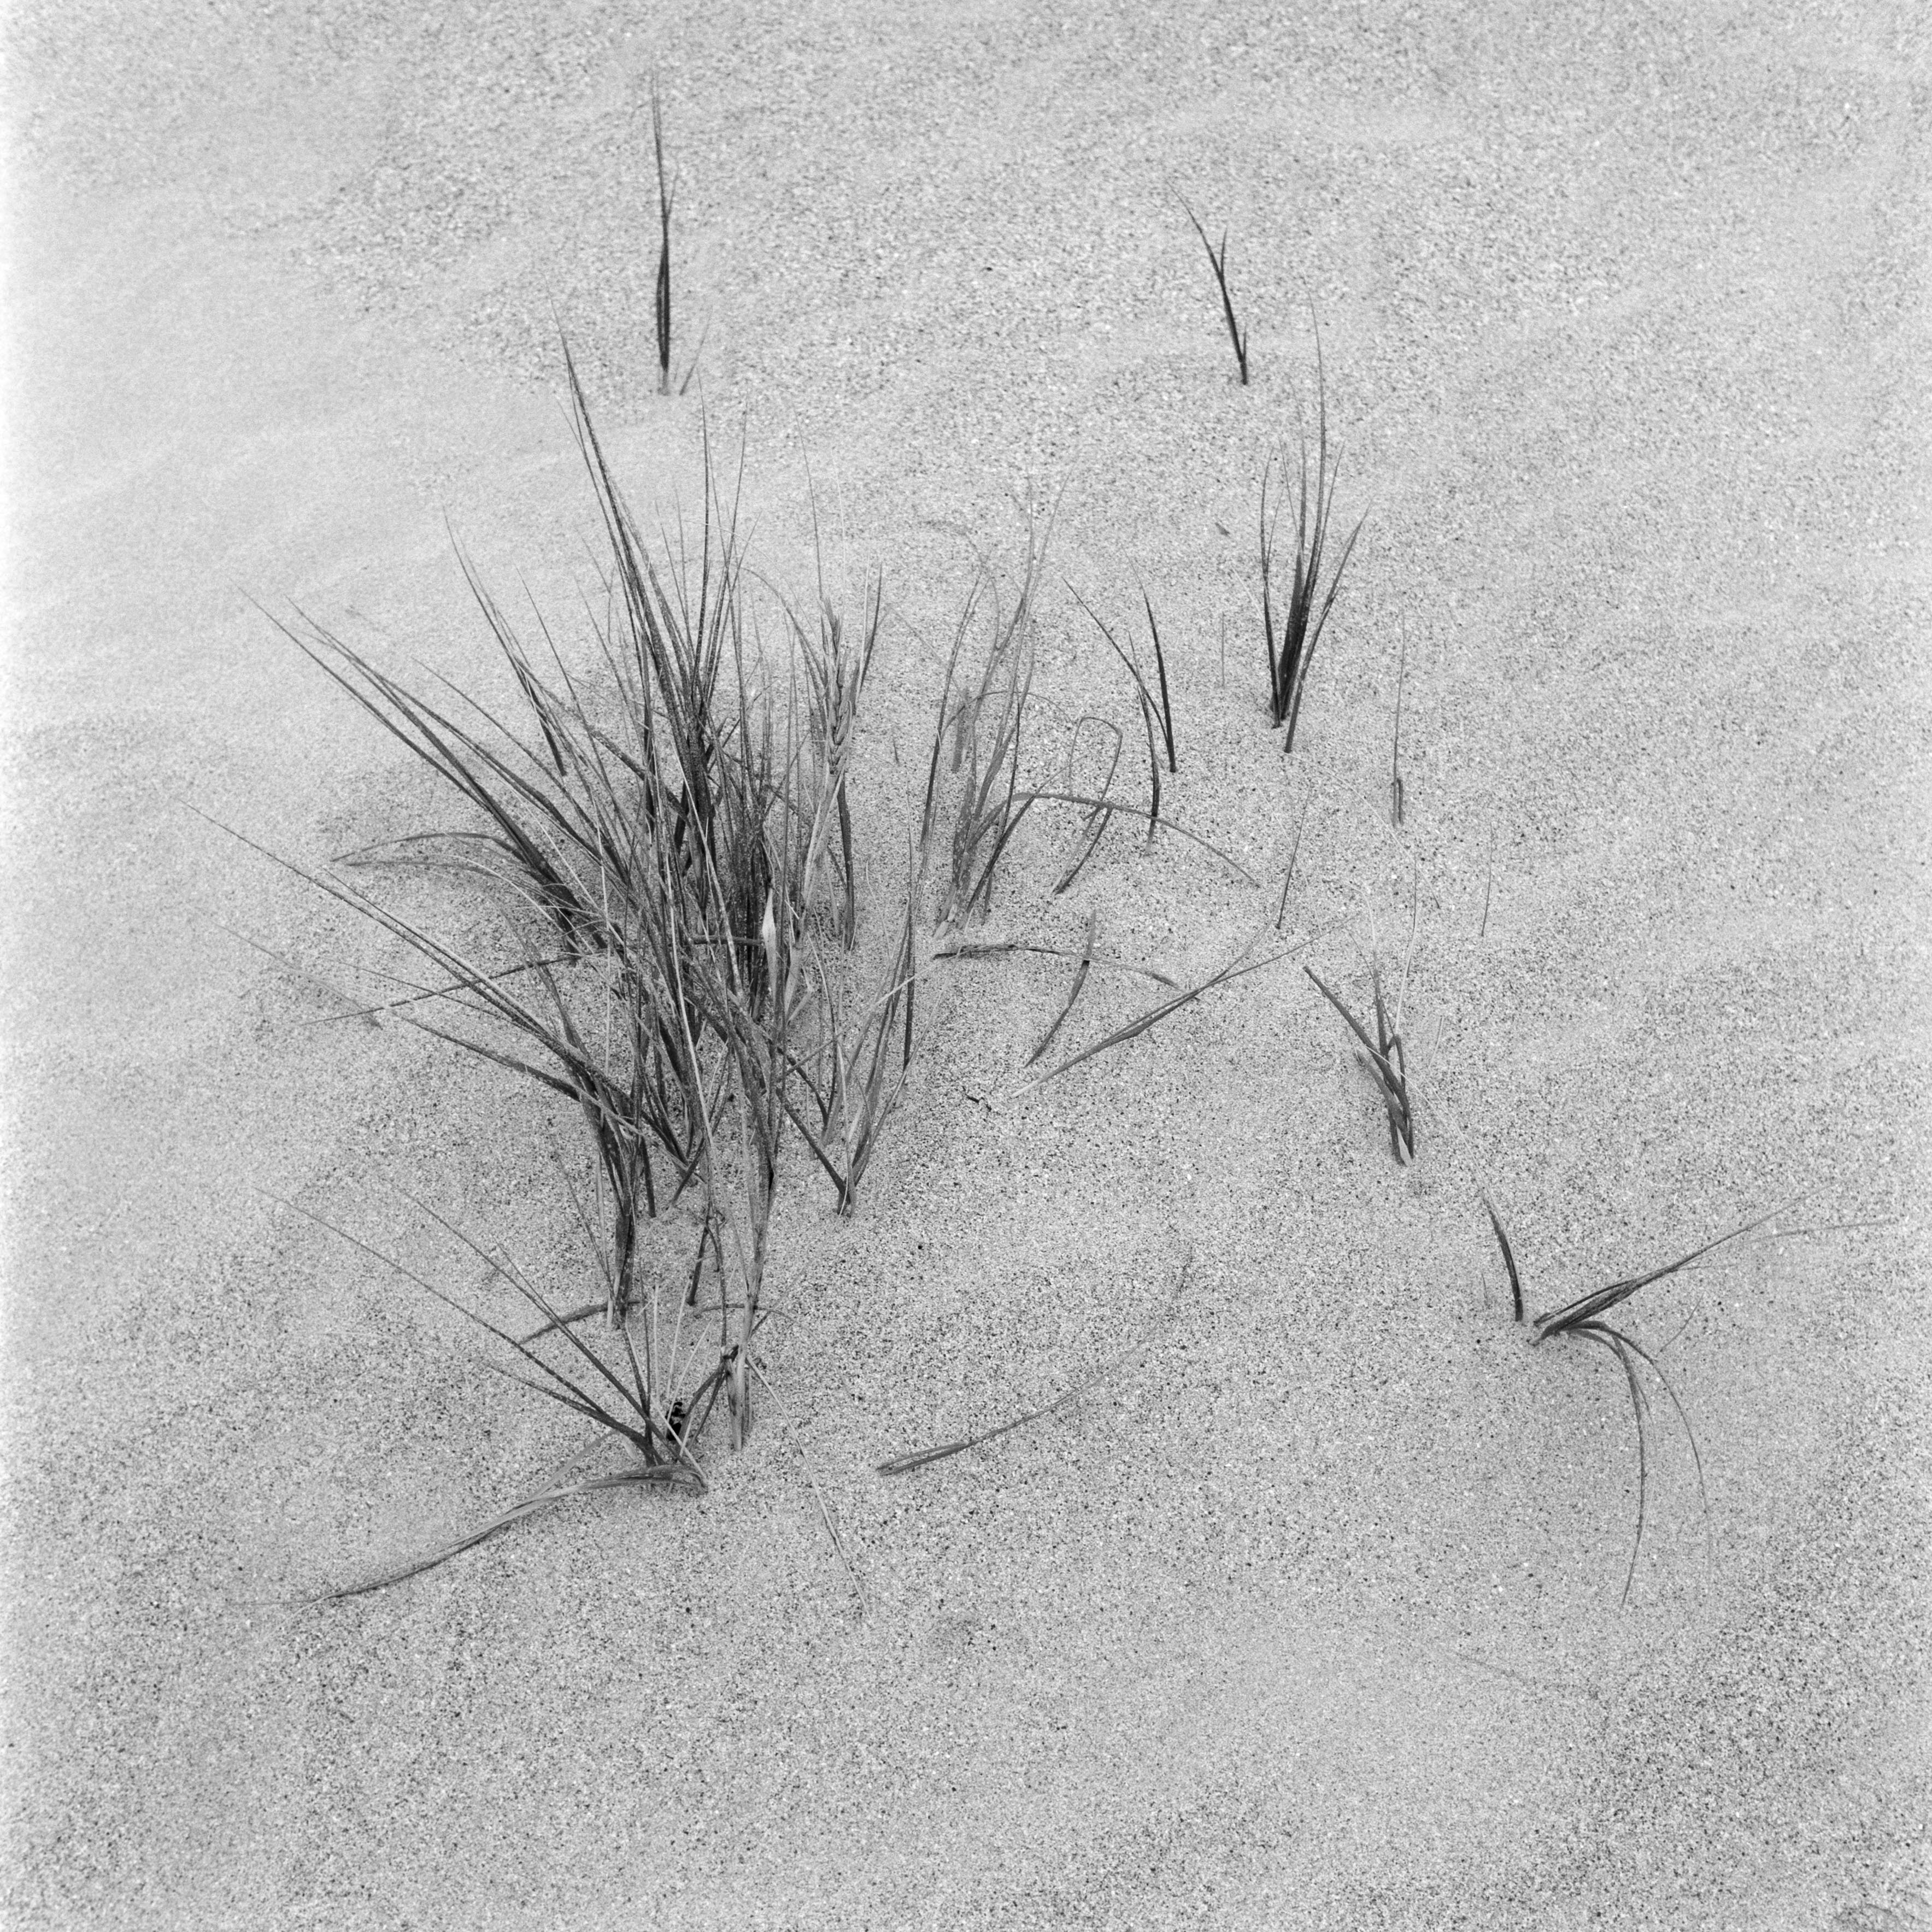 Grasses in dunes south africa landscape photography